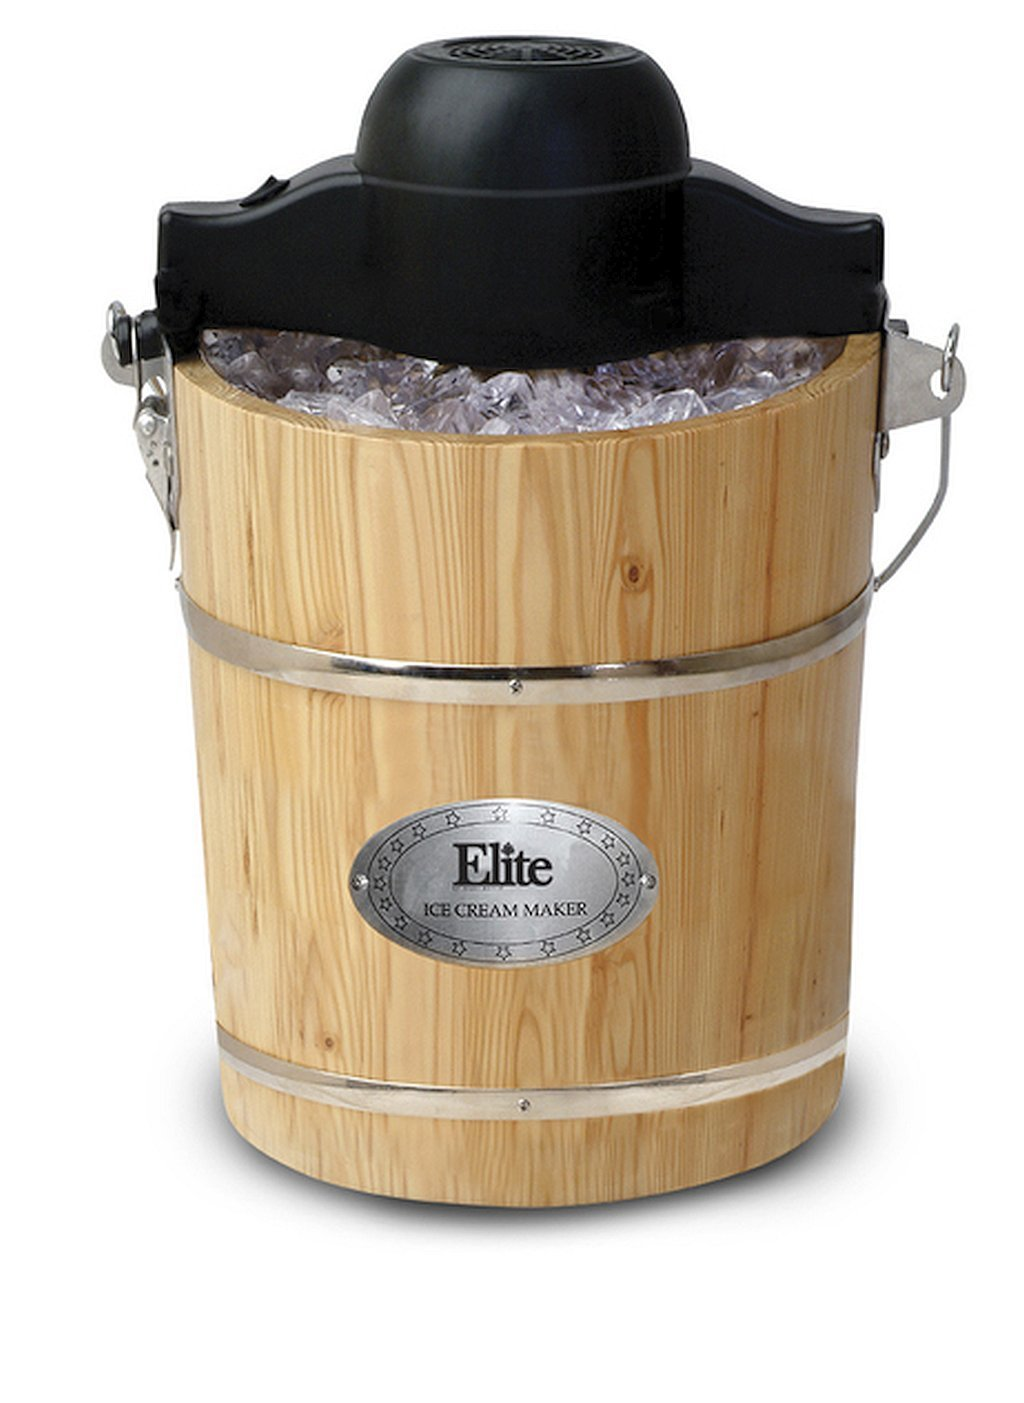 6-Quart Brown Old-Fashioned Pine-Bucket Electric/Manual Ice-Cream Maker